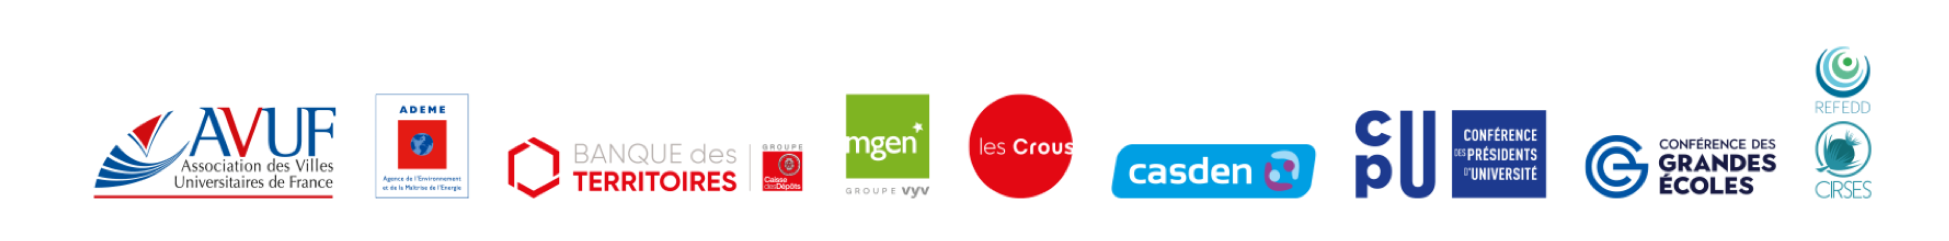 logo des organisations fondatrices du label Agir Ensemble